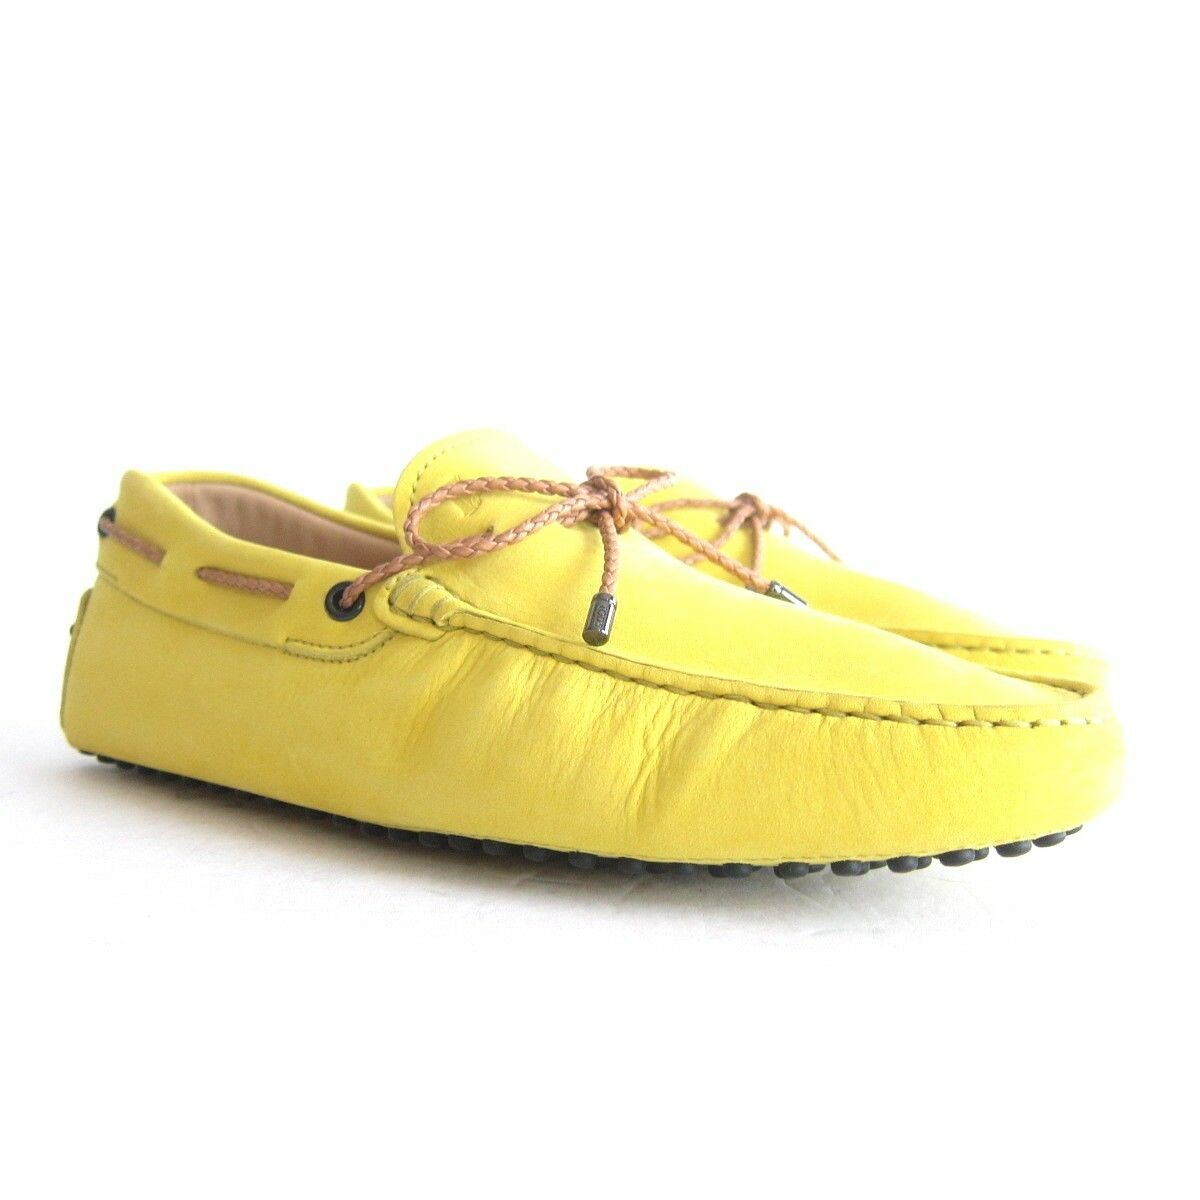 P-332129 New Tods Gommini Yellow Suede Driving shoes Size US 10 UK 9